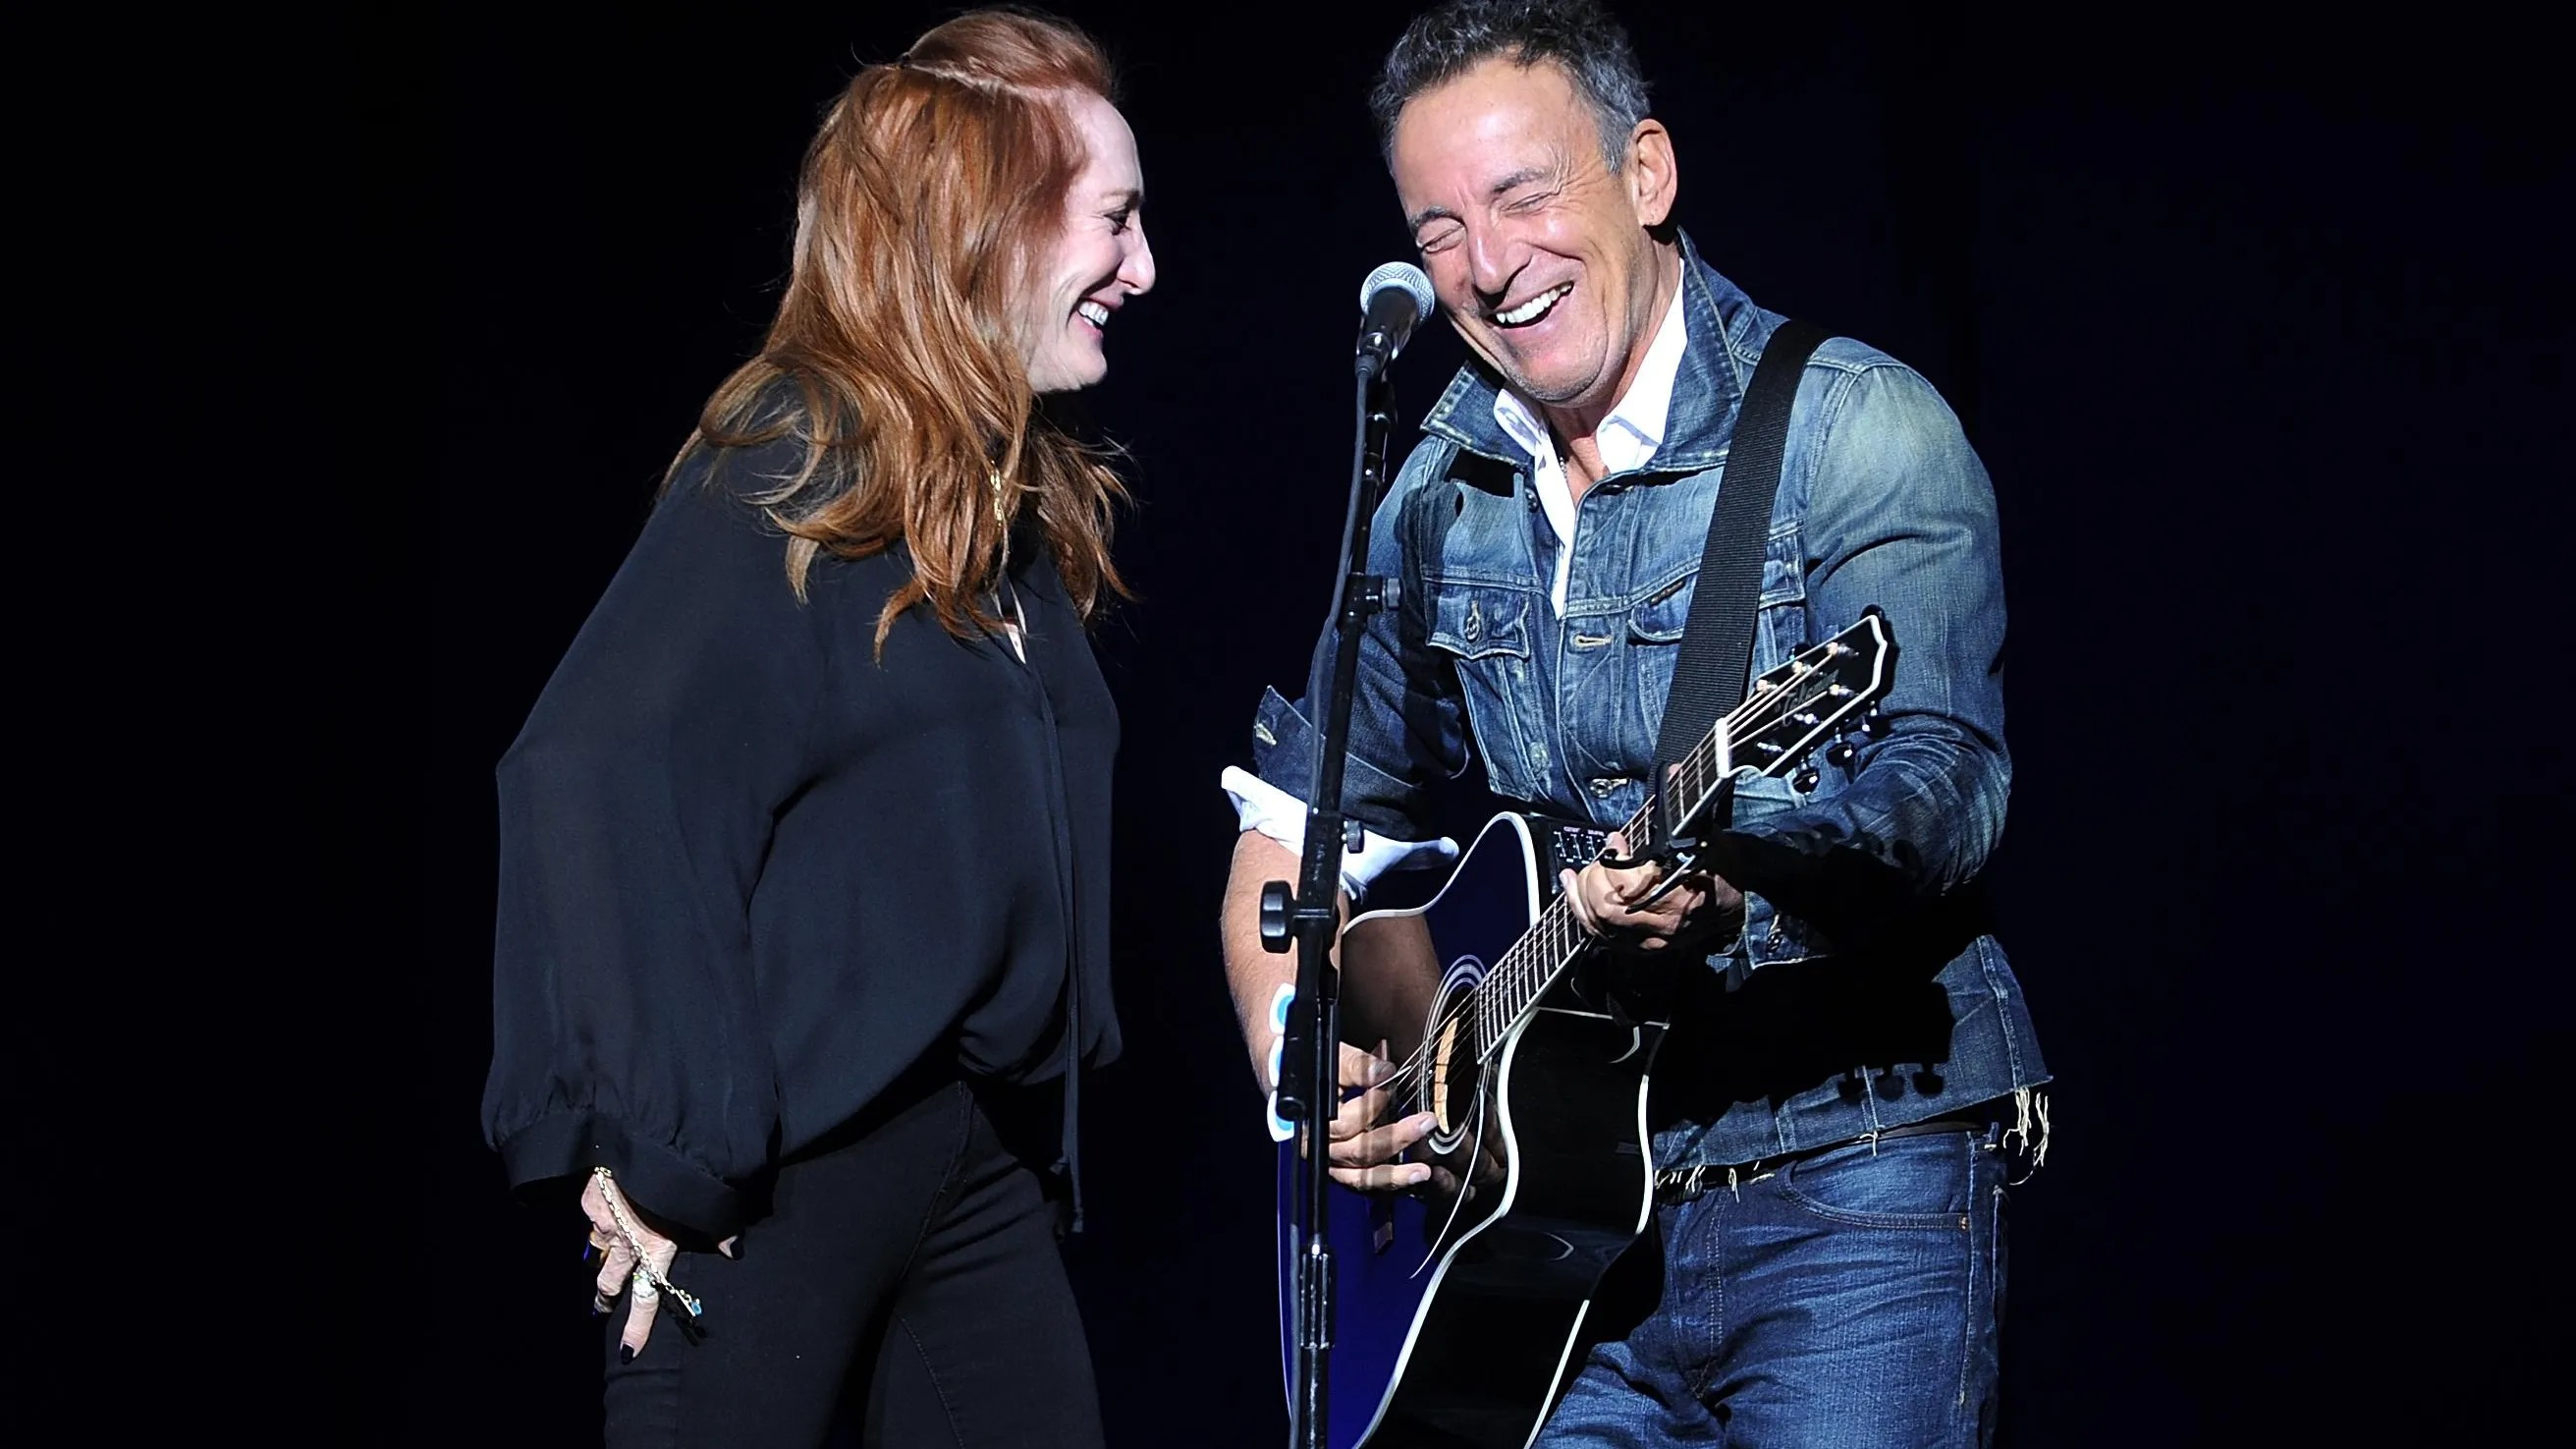 LETTER: Springsteen's mental illness struggles can inspire